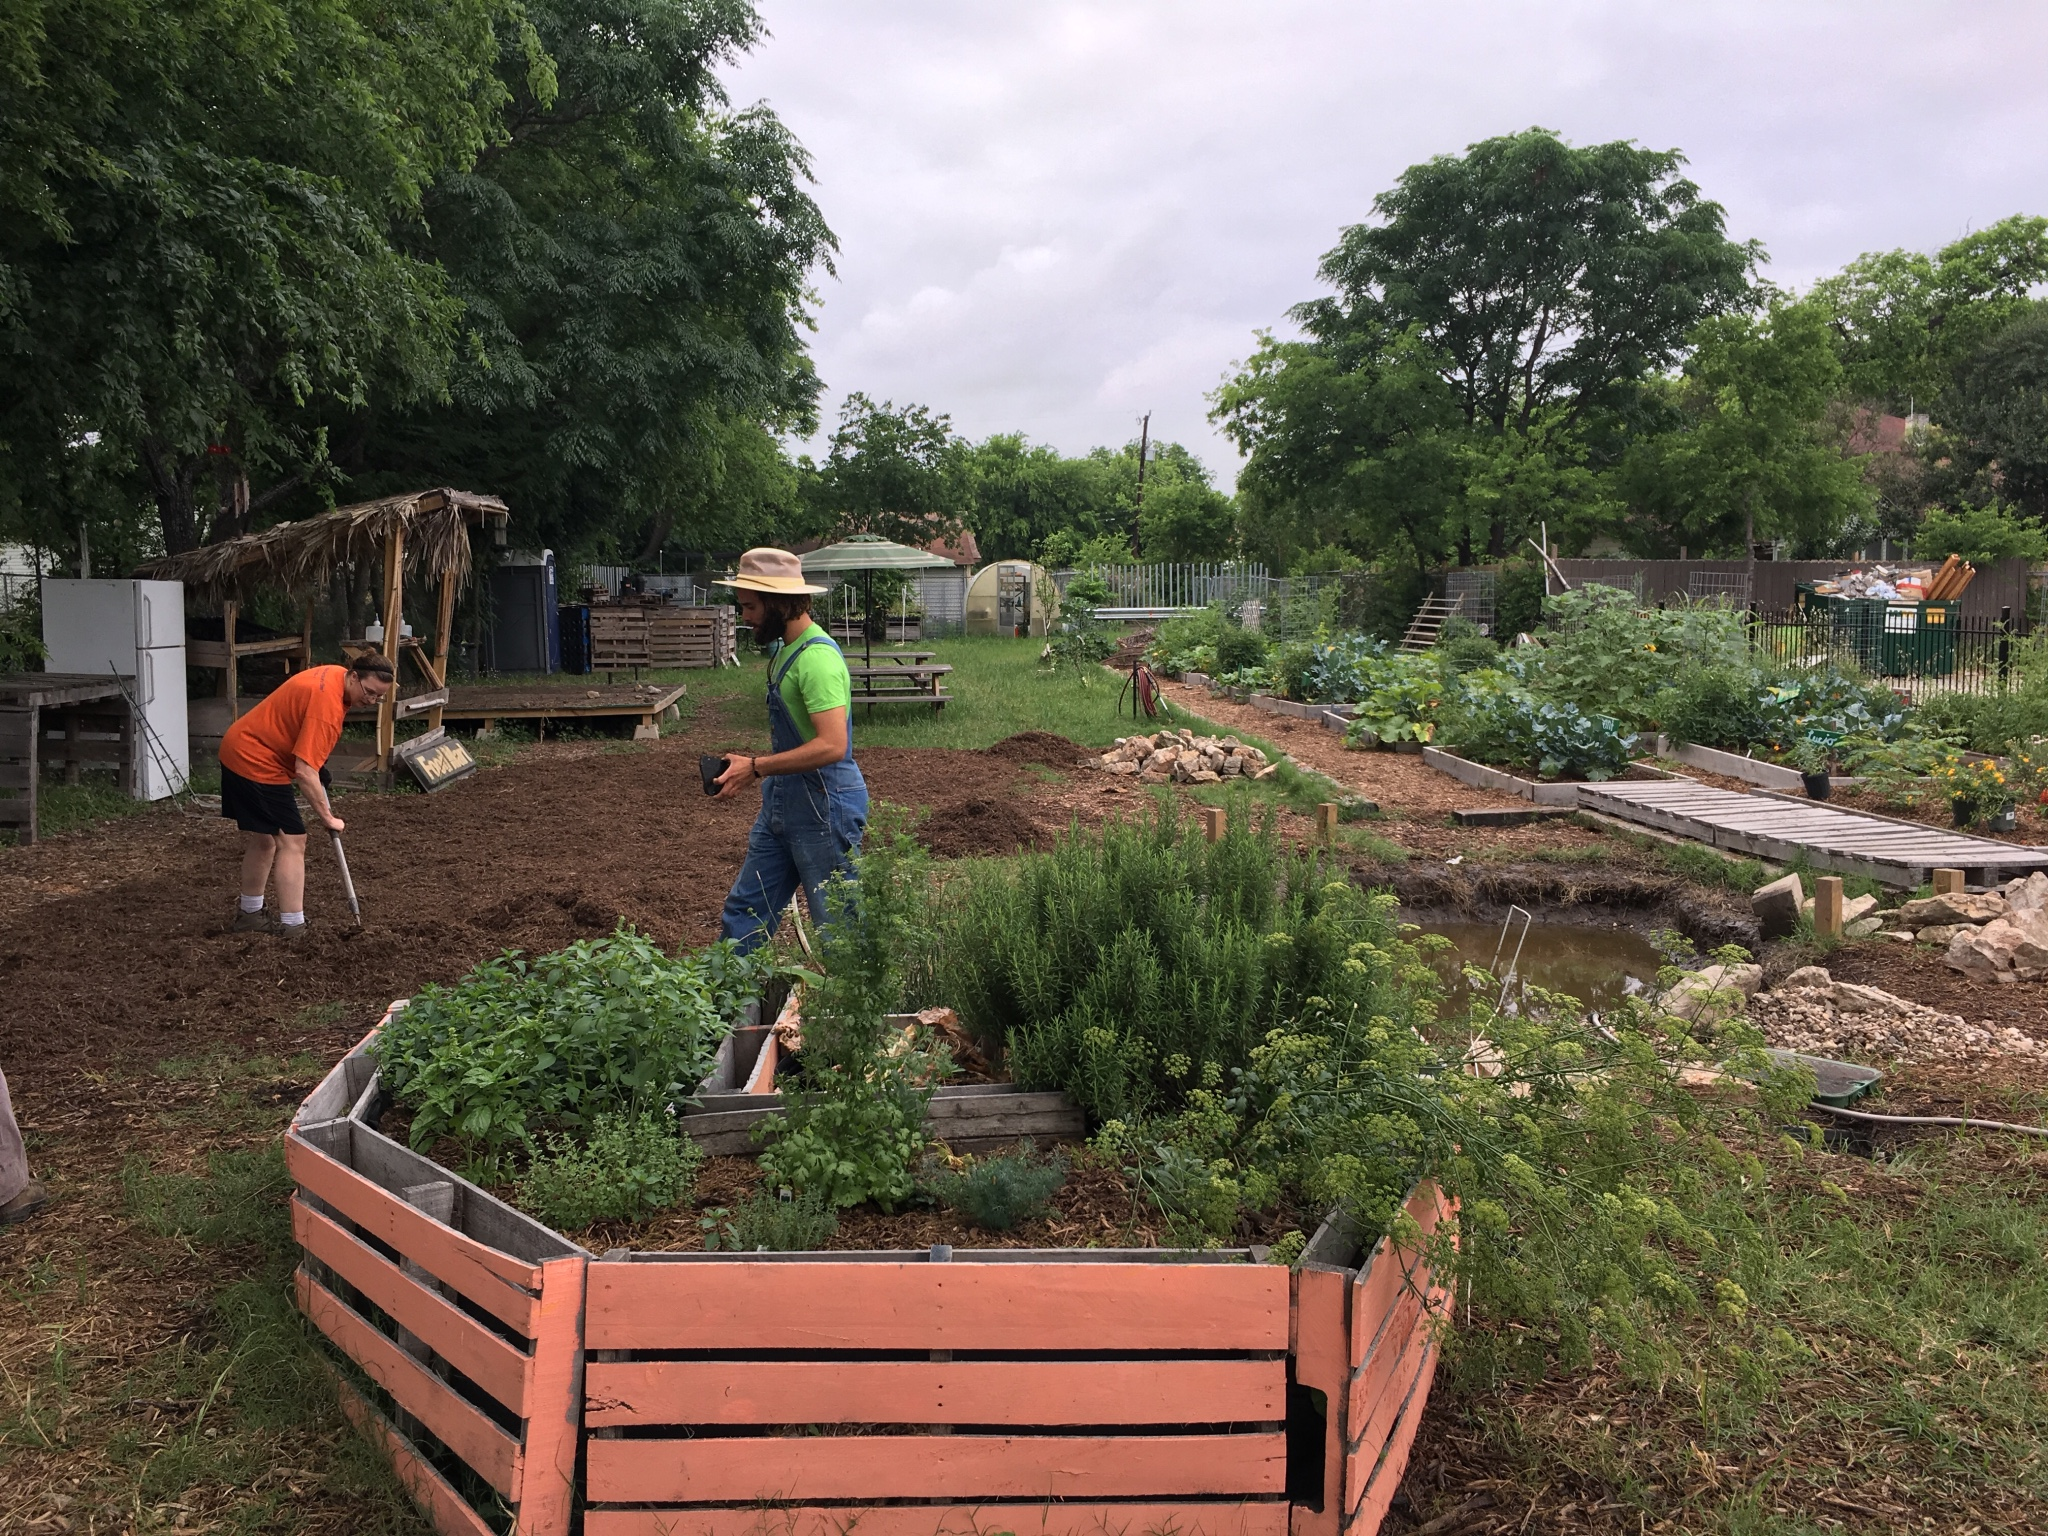 - Gardopia sprouted in 2015 to address health disparities in a high-crime corridor on the near-Eastside of San Antonio. Initially funded by the San Antonio Housing Authority (SAHA), Gardopia implemented crime prevention through environmental design (CPTED) as a methodology to reduce crime around an abandoned lot. Working with SAHA, this became the Eastside's first